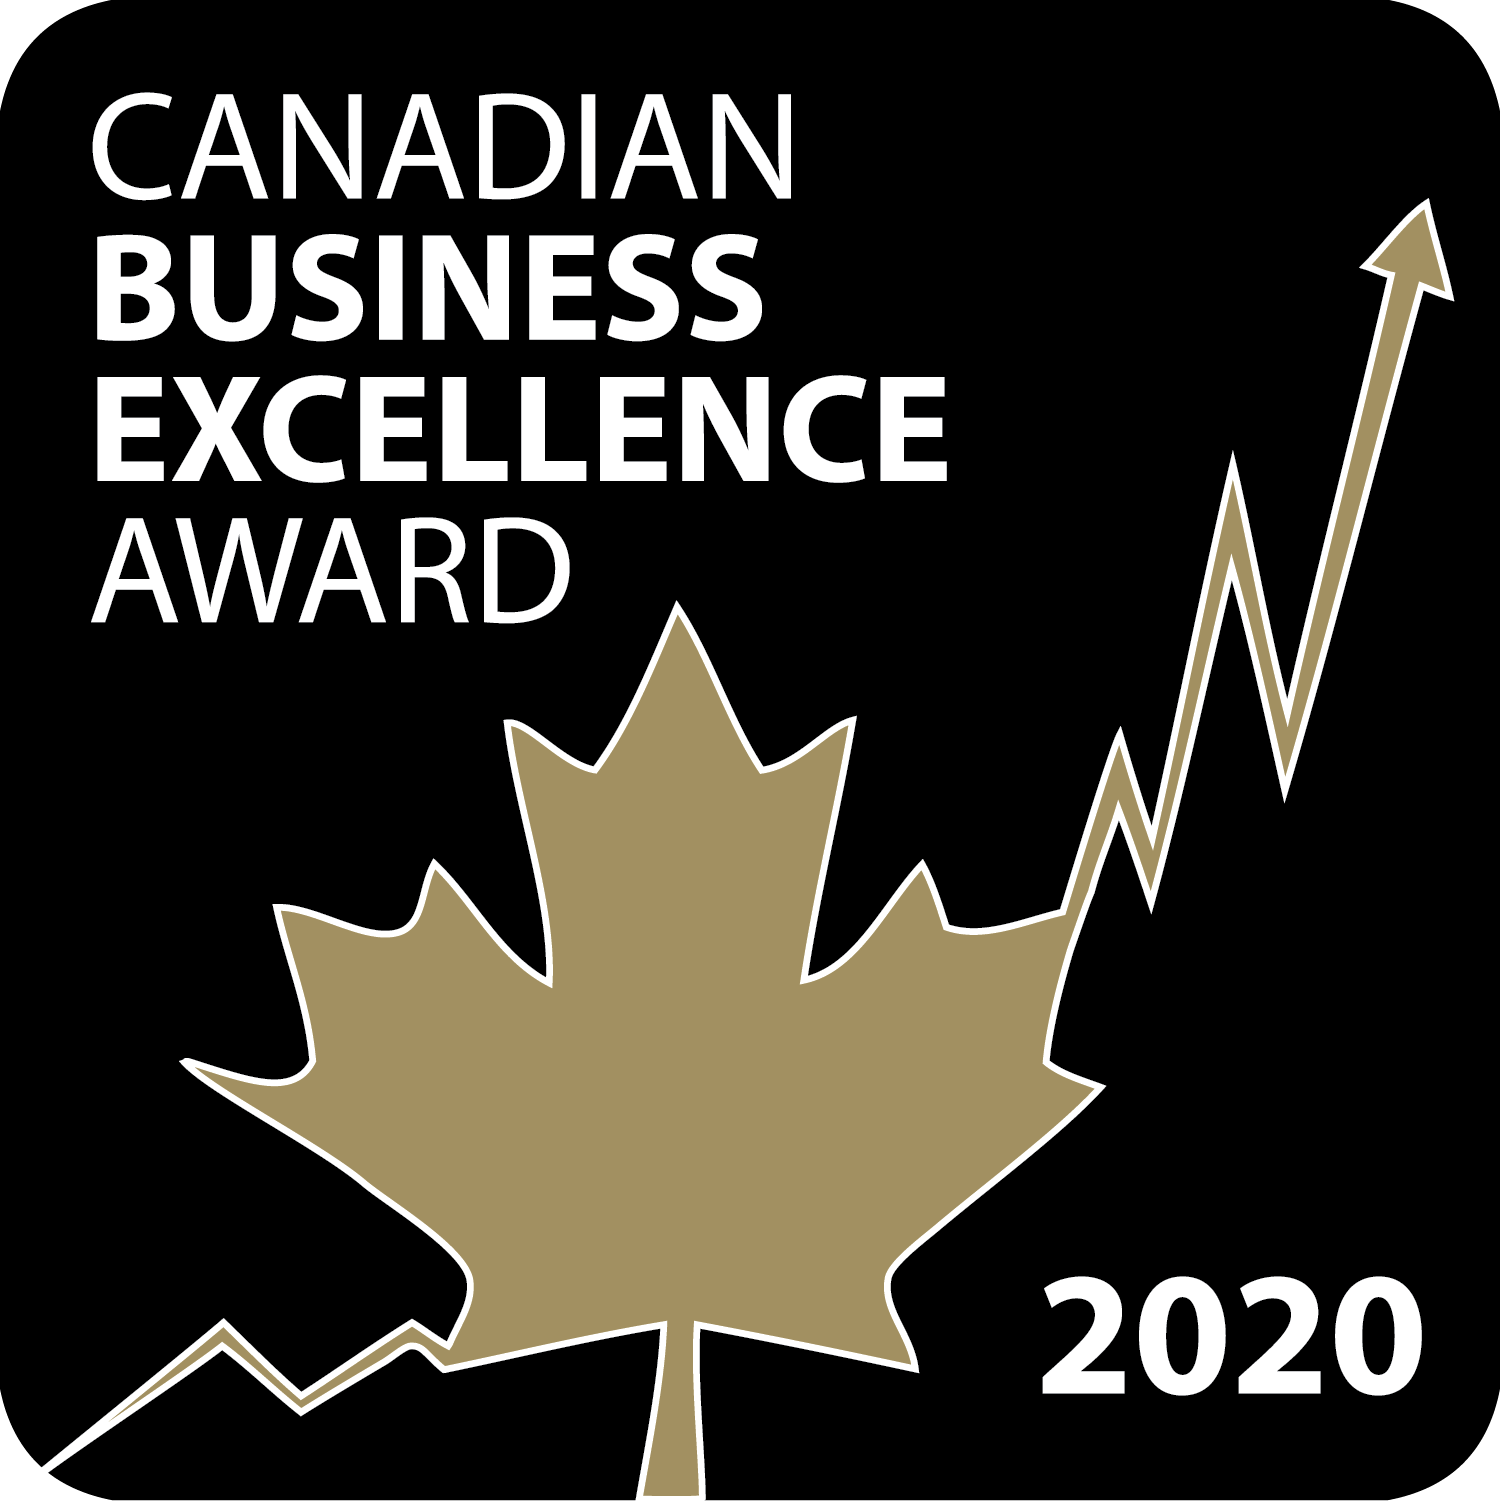 Geotab Award Canadian Business Excellence Award 2020